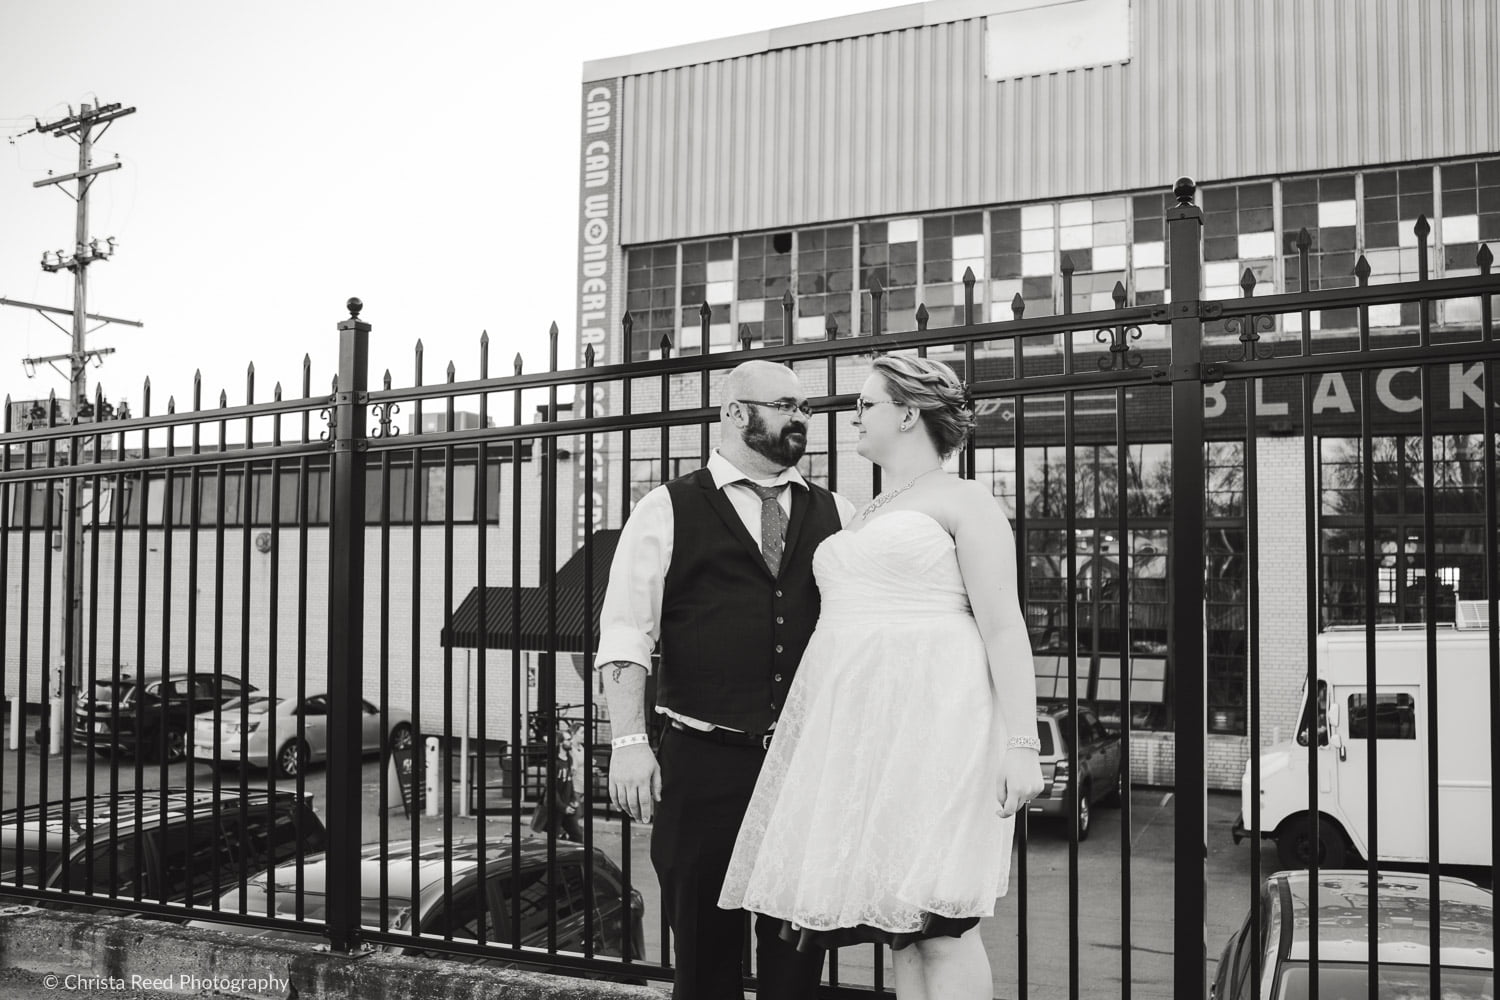 an industrial wedding venue at can can wonderland and black stack brewery